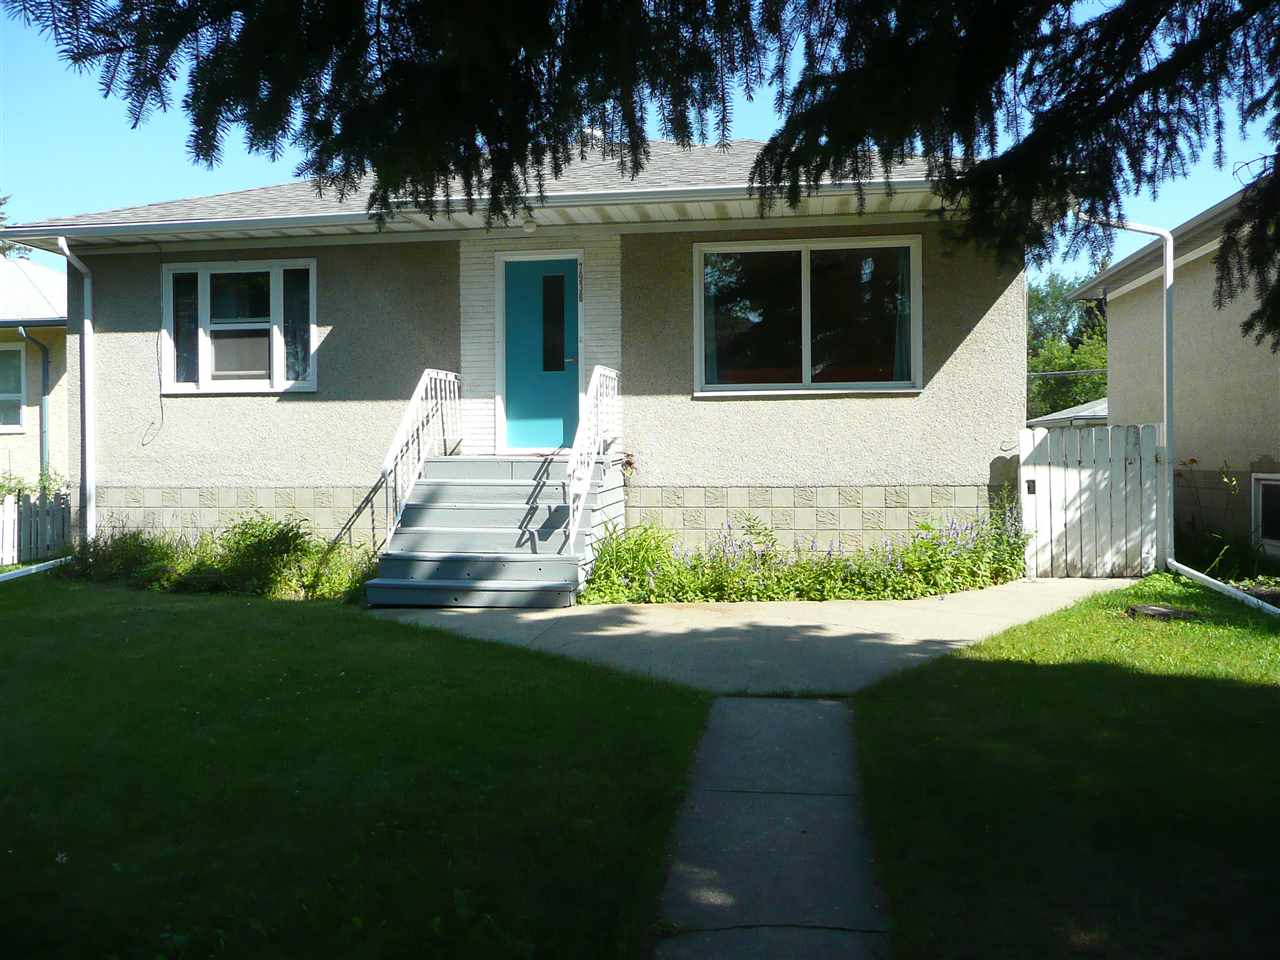 Well maintained 3 plus 1 bedroom bungalow has been recently painted and some renovations in the last year. Large 44 x 160 ft lot that is zoned RF3 and would be perfect for a duplex. Would be a great starter home with the potential to build an infill in area that has seen lots of activity in the last year. Close to Bonnie Doon Mall and a short drive to downtown and access to 75 ST and Whyte Ave. Major developments are in the works and an LRT station only a few blocks away at the mall. There is plumbing and electrical roughed in for a mother in law suite. Some of the upgrades include 100 amp service, vinyl windows, flooring, hot water tank. Loads of potential for redevelopment in an up and coming infill area.